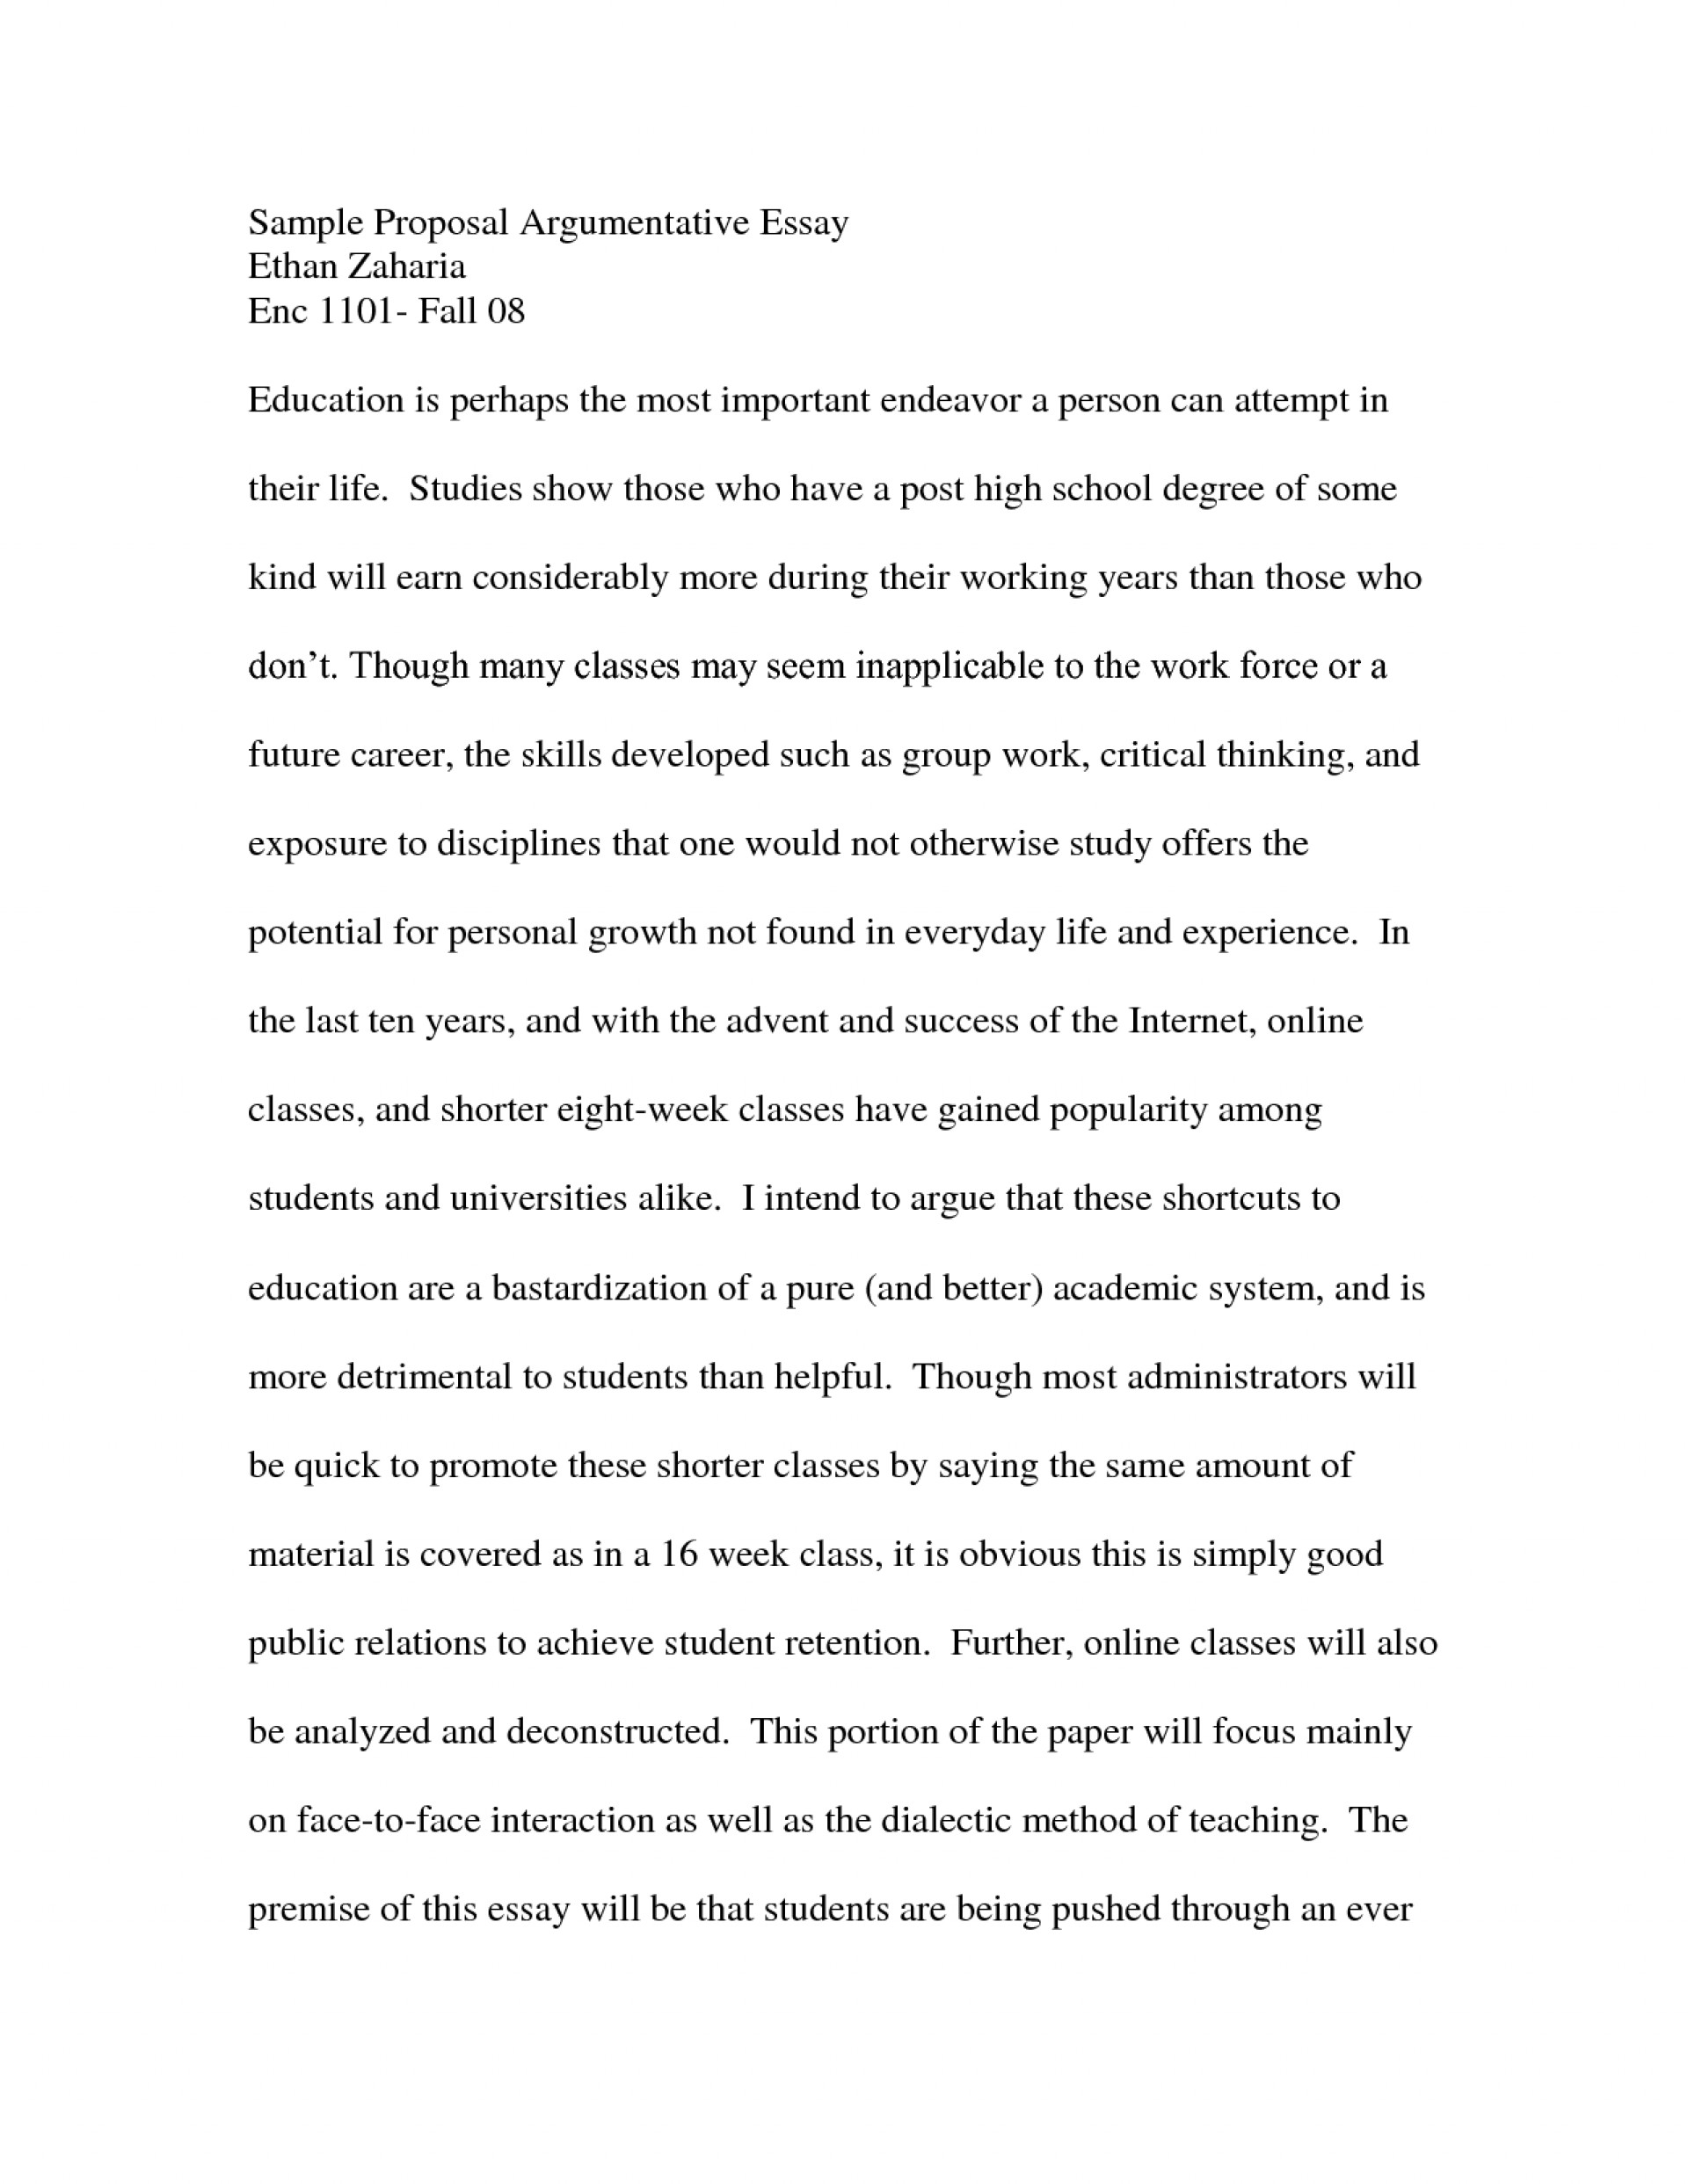 007 Essay Example 3d7hsocgst What Is Top A Proposal The Purpose Of Good Topic Argument 1920